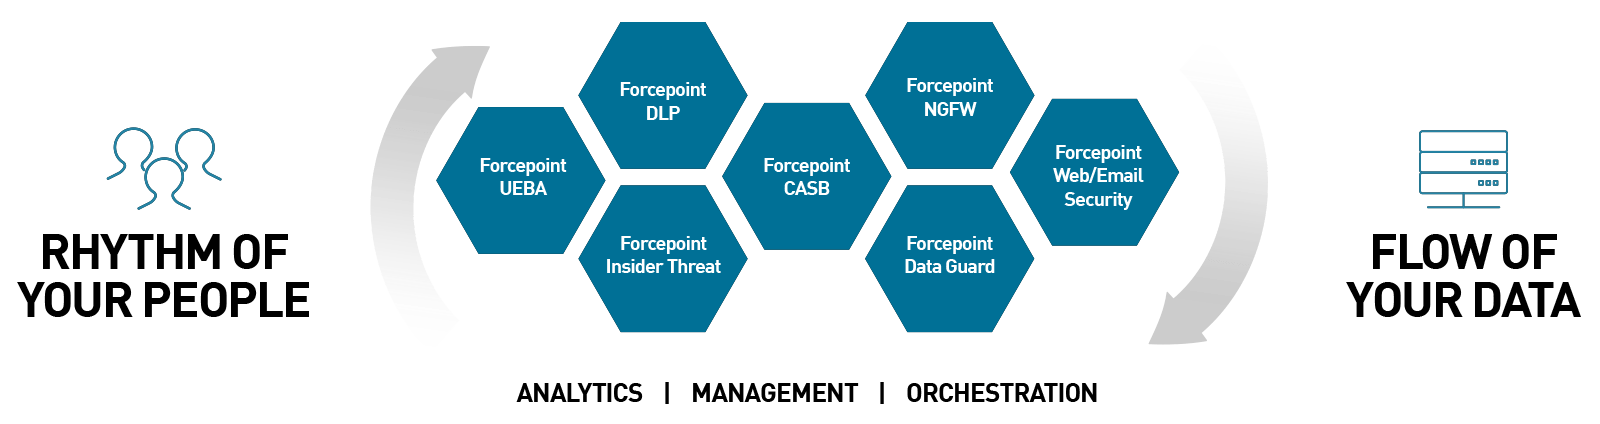 Reinventing Cybersecurity in a Zero-Perimeter World | Forcepoint